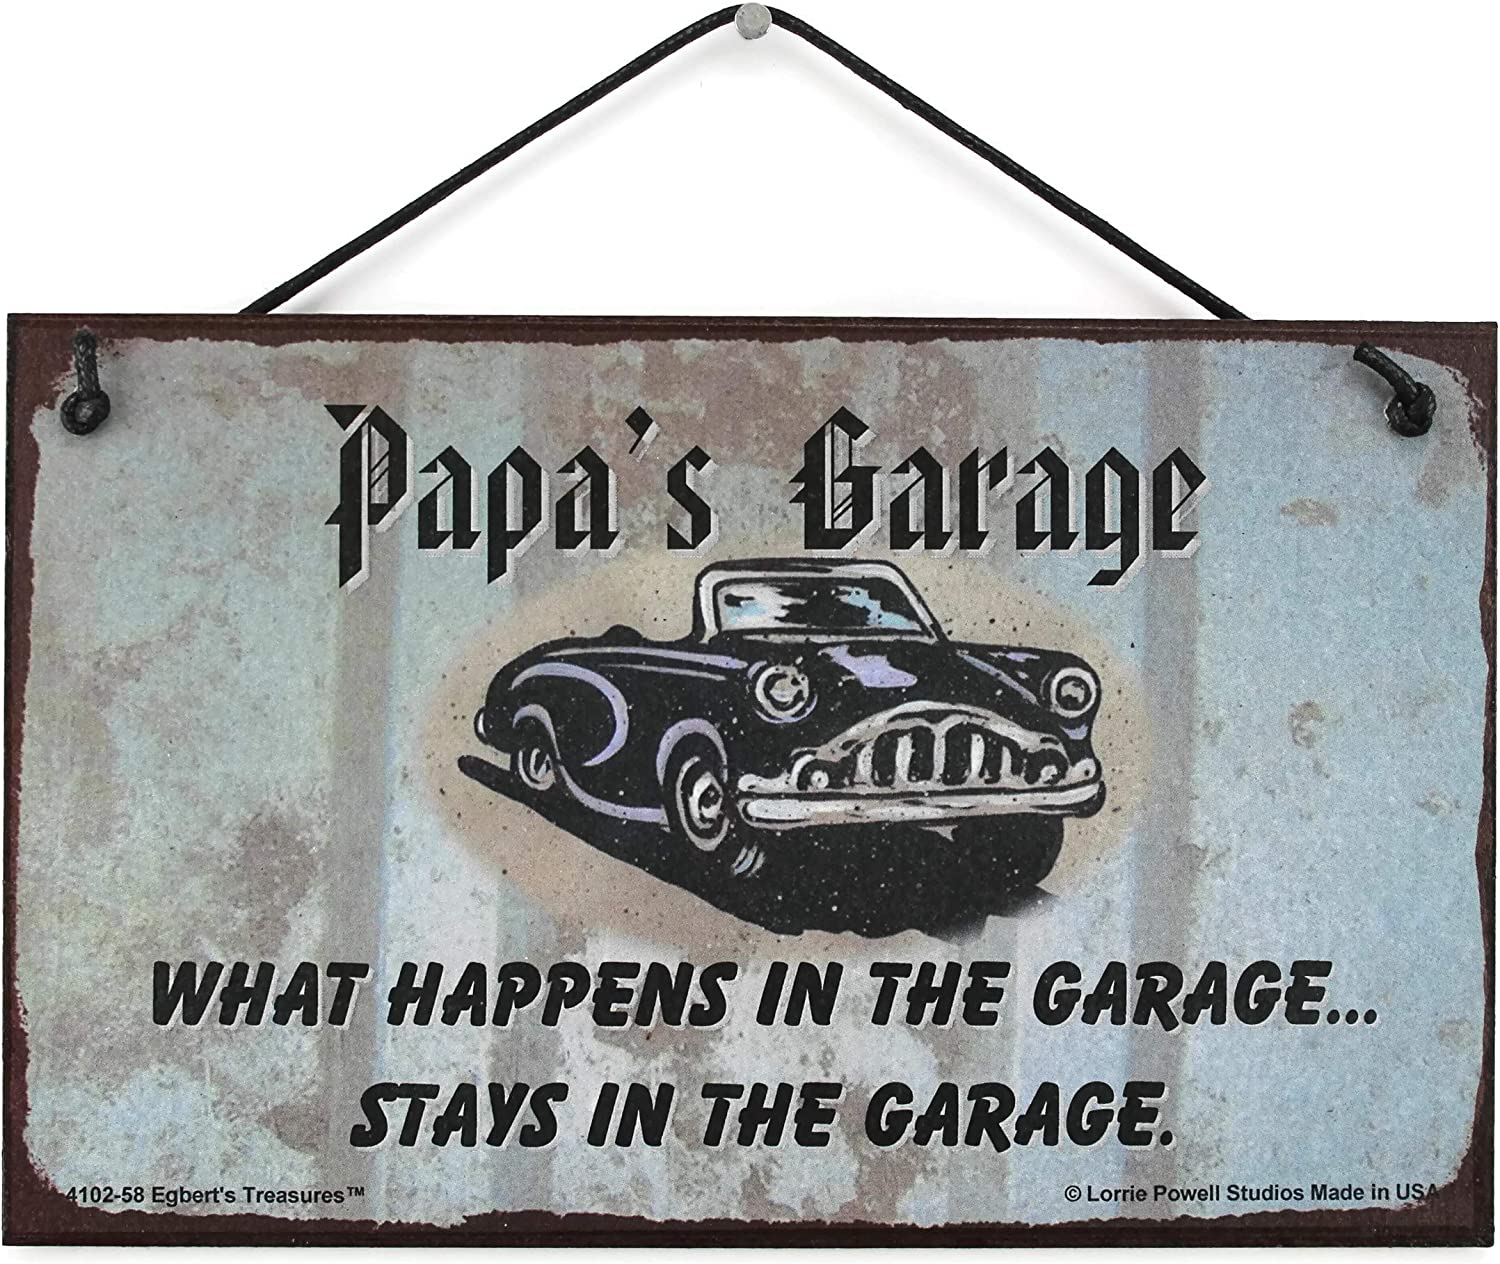 """5x8 Vintage Style Sign with Classic Car Saying """"Papa's Garage WHAT HAPPENS IN THE GARAGE... STAYS IN THE GARAGE."""" Decorative Fun Universal Household Family Signs for Grandpa (5x8)"""